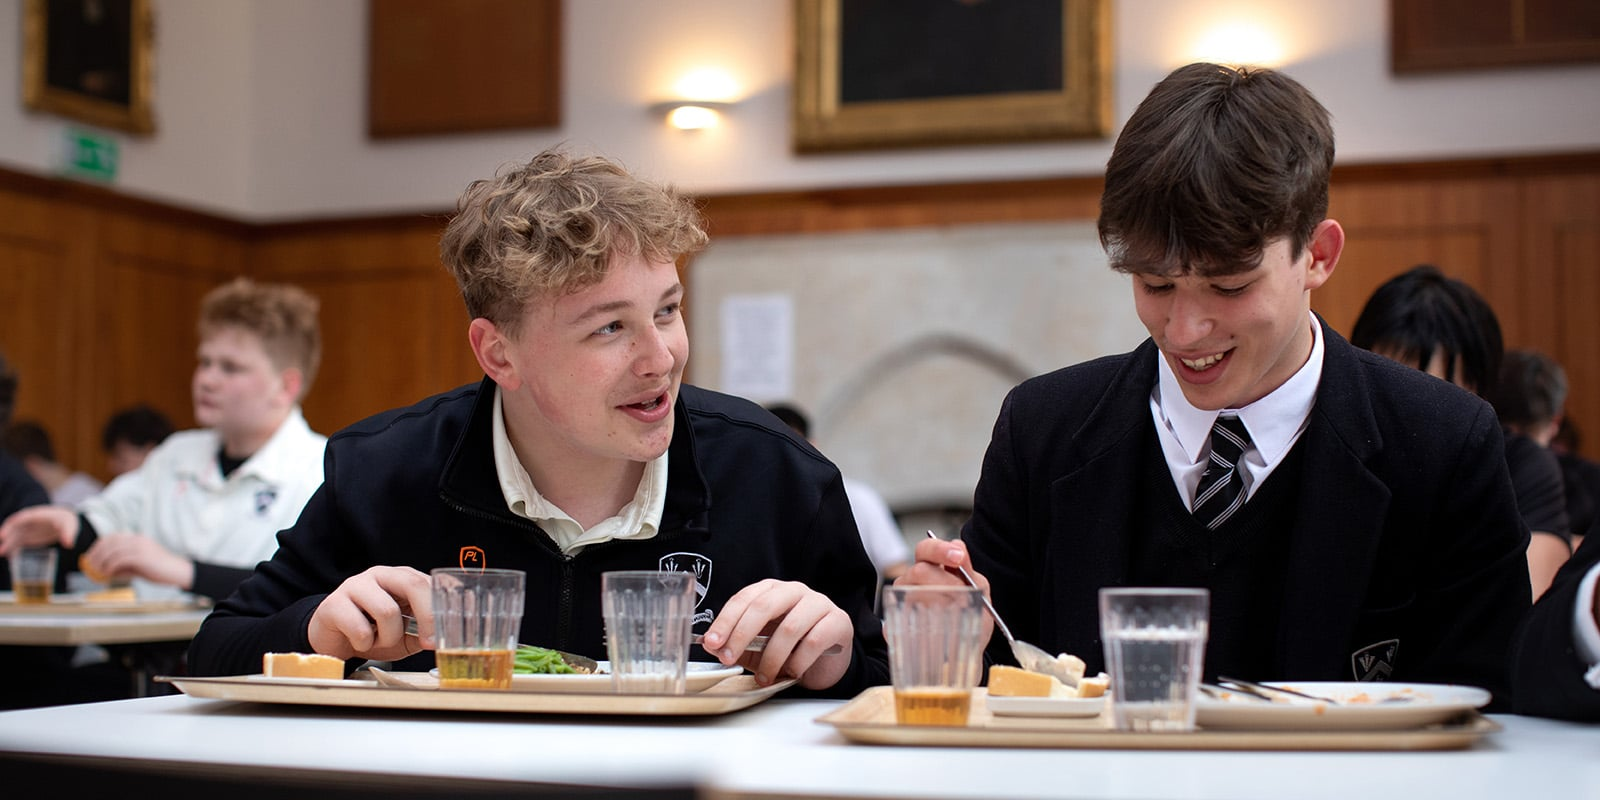 students in the lunch hall; Catering